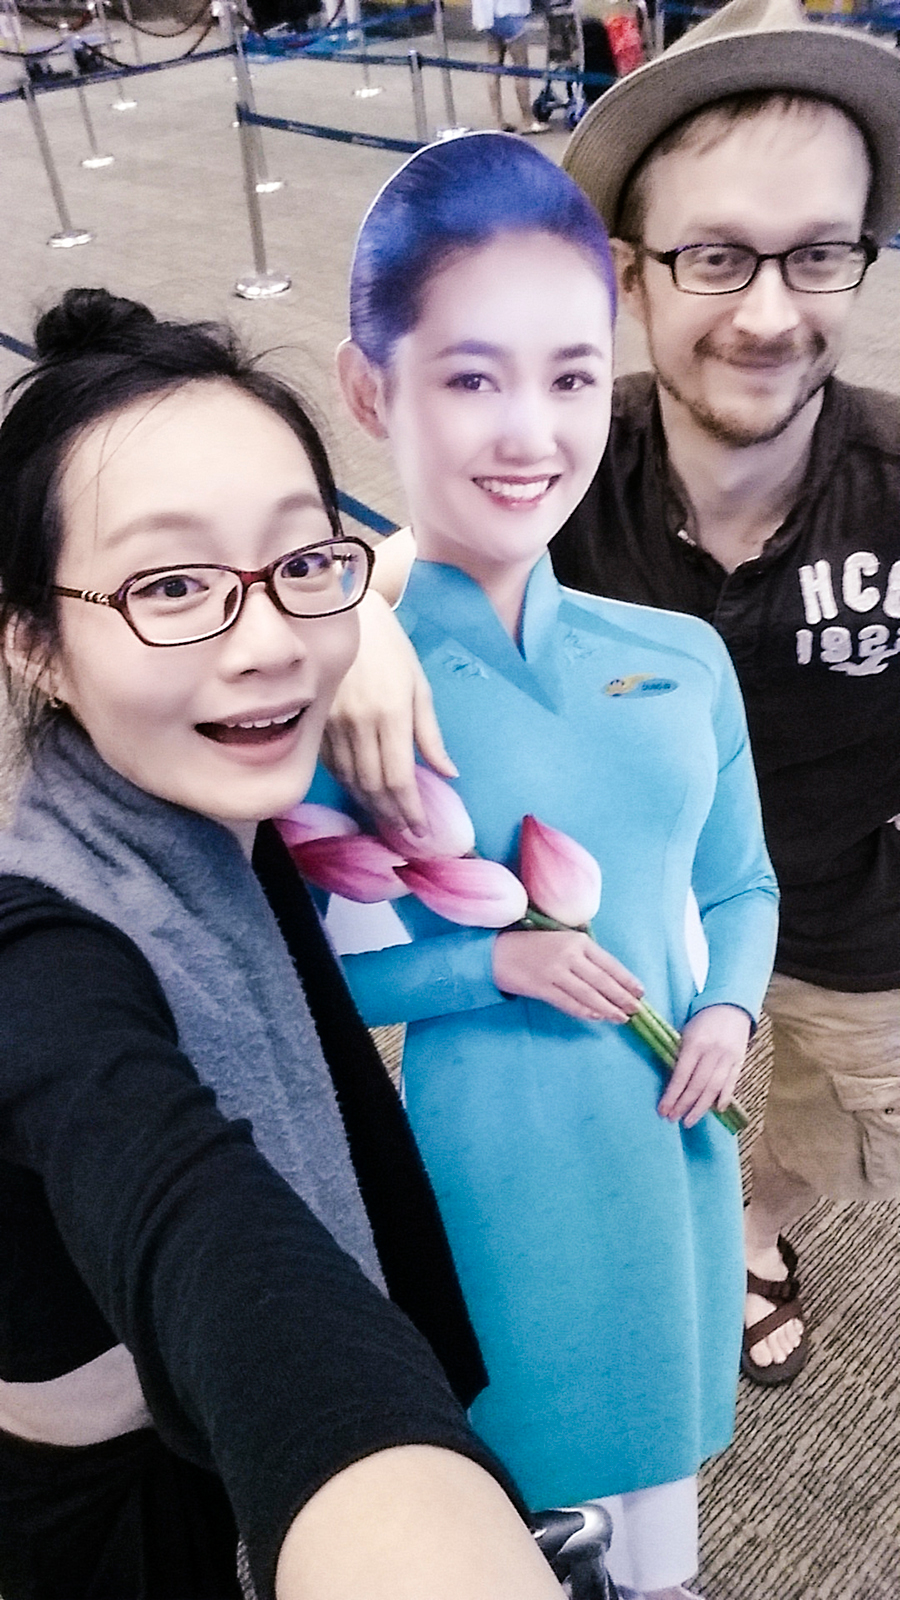 Selfie with a cardboard cutout from Vietnam Airlines at Singapore Changi Airport.